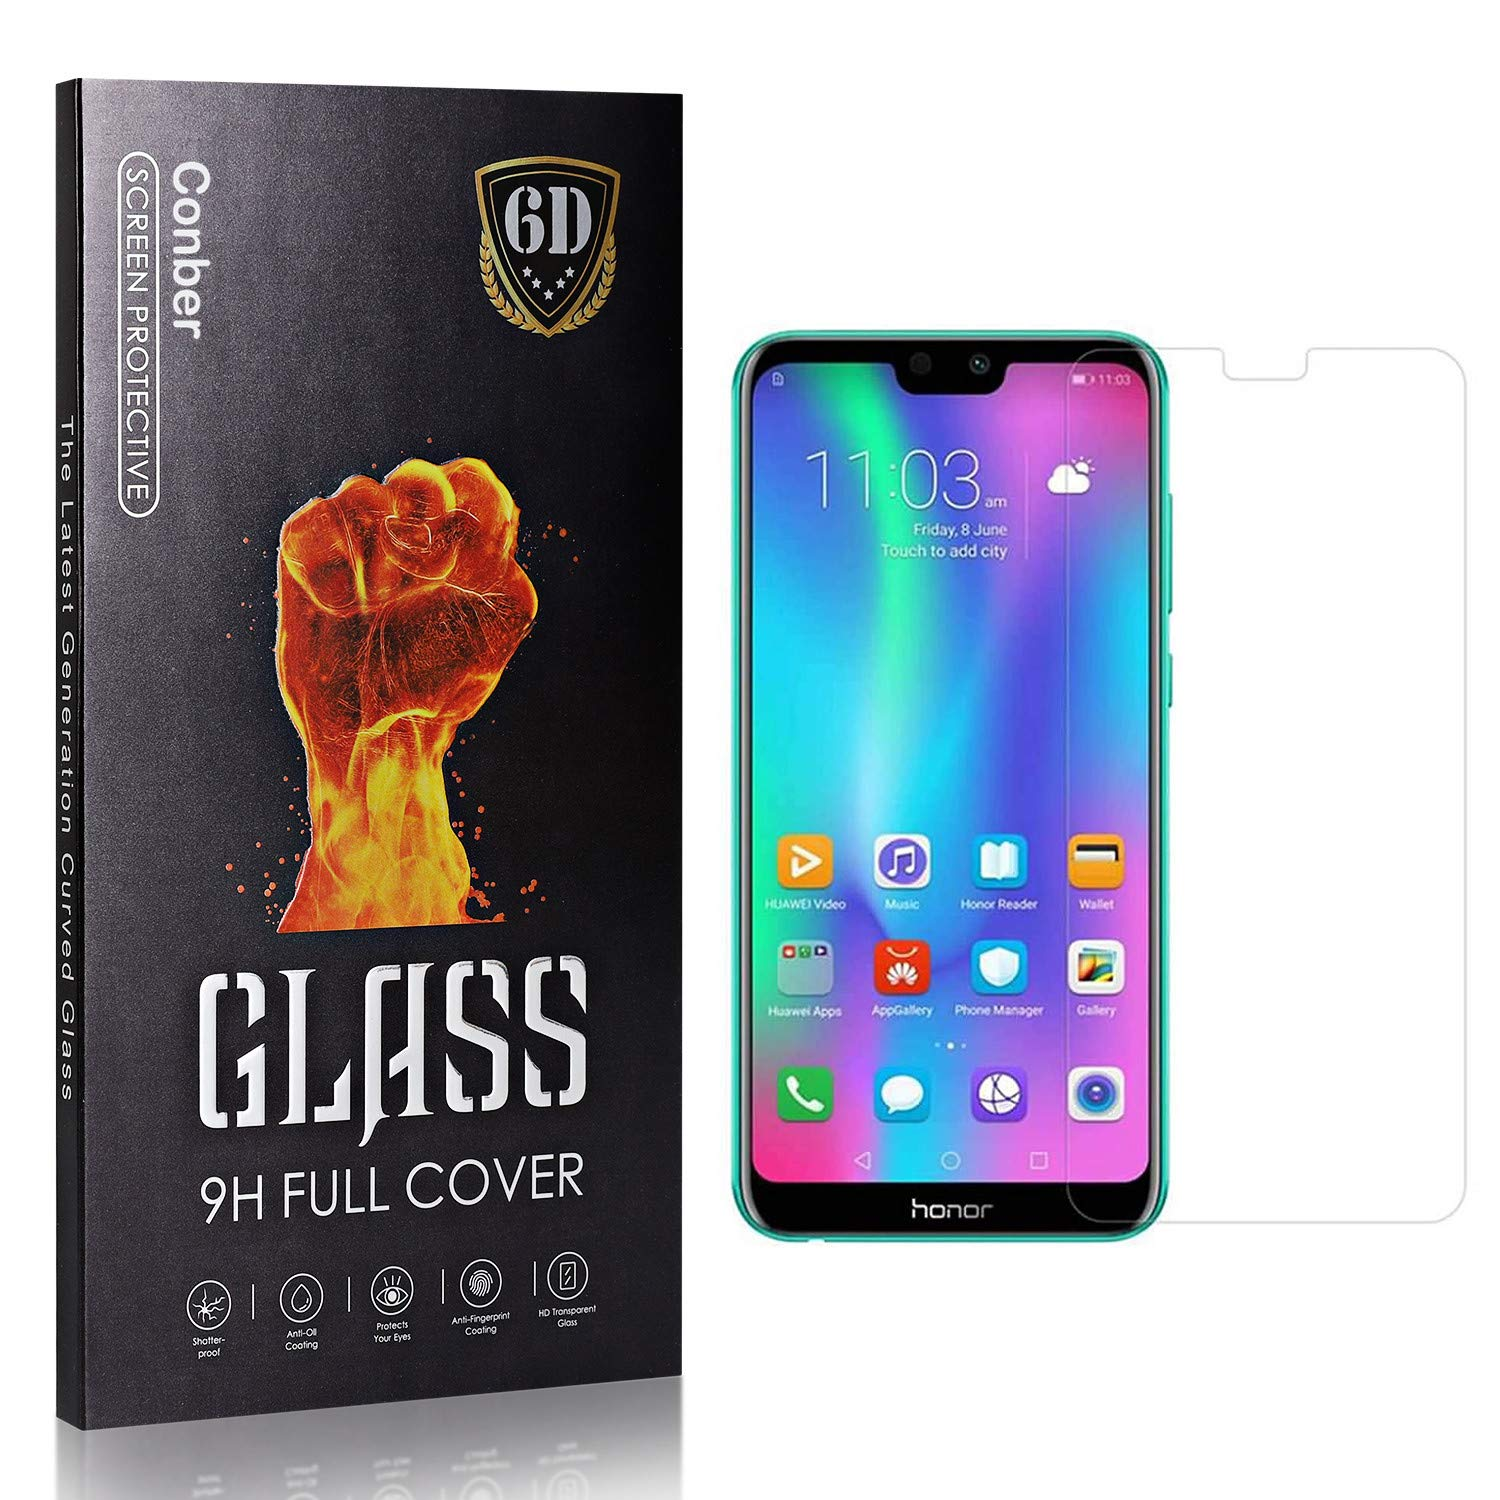 Conber 3 Pack Screen Max 76% OFF Protector for Charlotte Mall Honor 9I Huawei G Tempered